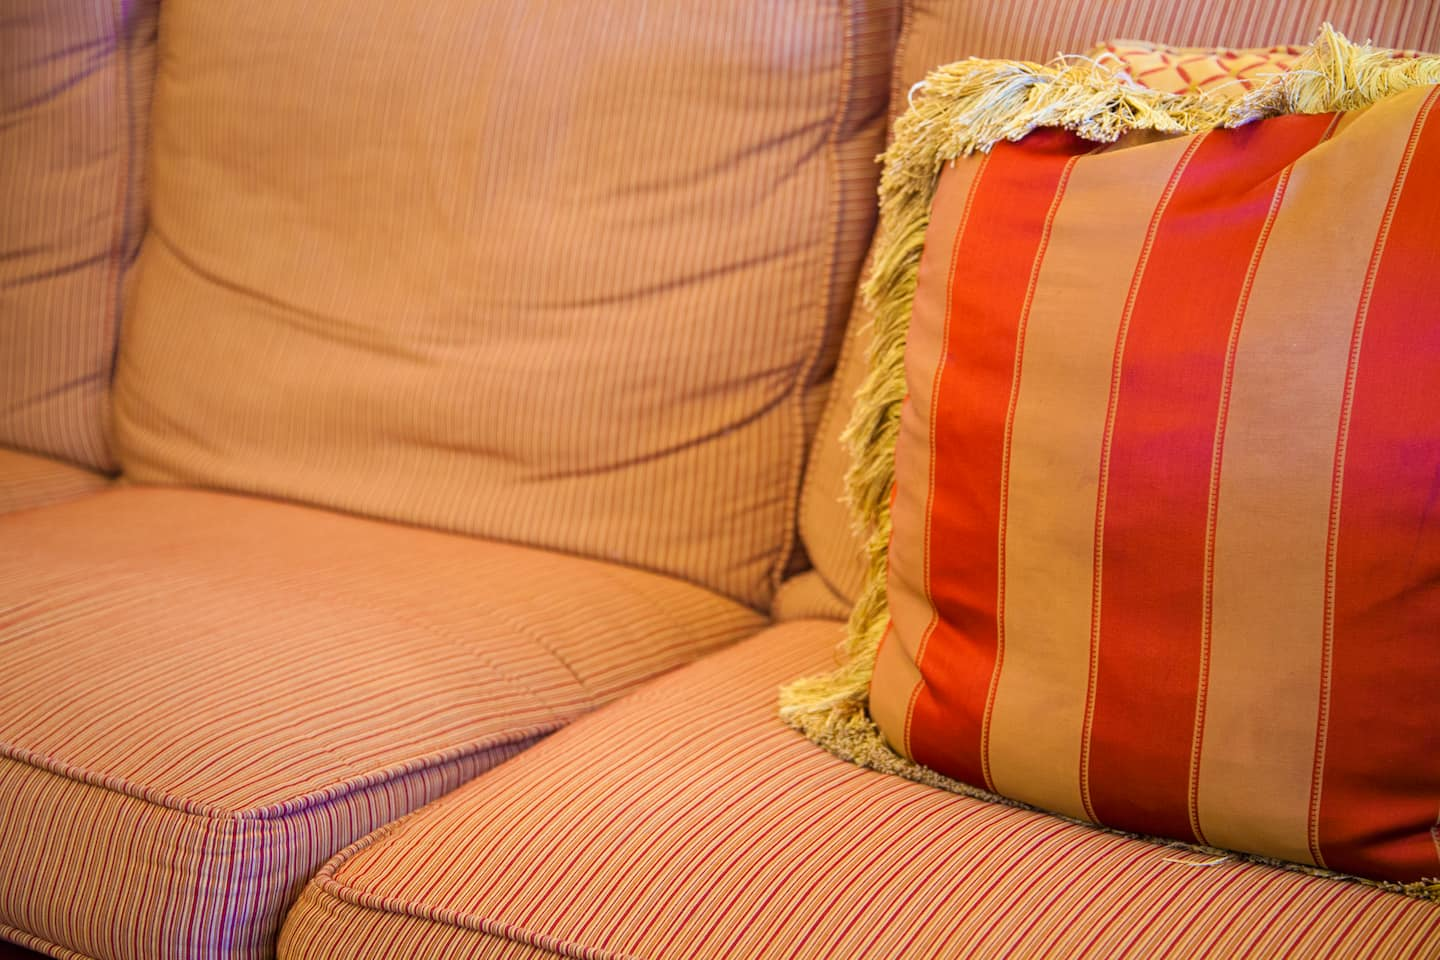 Upholstery Cleaning Angies List - Sofa upholstery cleaning